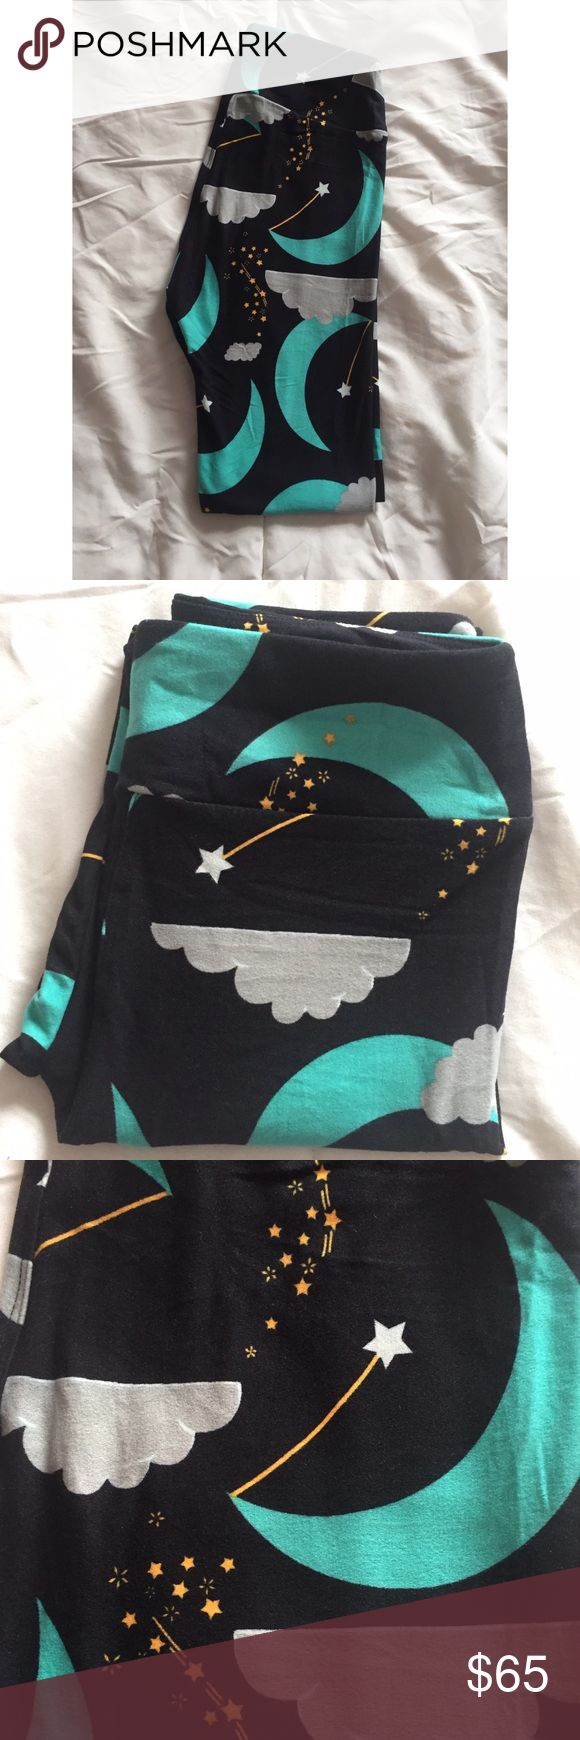 """LuLaRoe sz OS Crescent moon, stars & clouds NWT Brand new, super cute! Black background, teal moons, gray clouds and mustard colored stars. My daughter and I sing twinkle, twinkle every night so I HAD to have these. I finally found them and have obviously packed on some """"holiday"""" poundage so I'll be on the lookout for them in TC. Open to offers but no low balls please! The time alone I spent to find these is worth a small fortune  LuLaRoe Pants Leggings"""